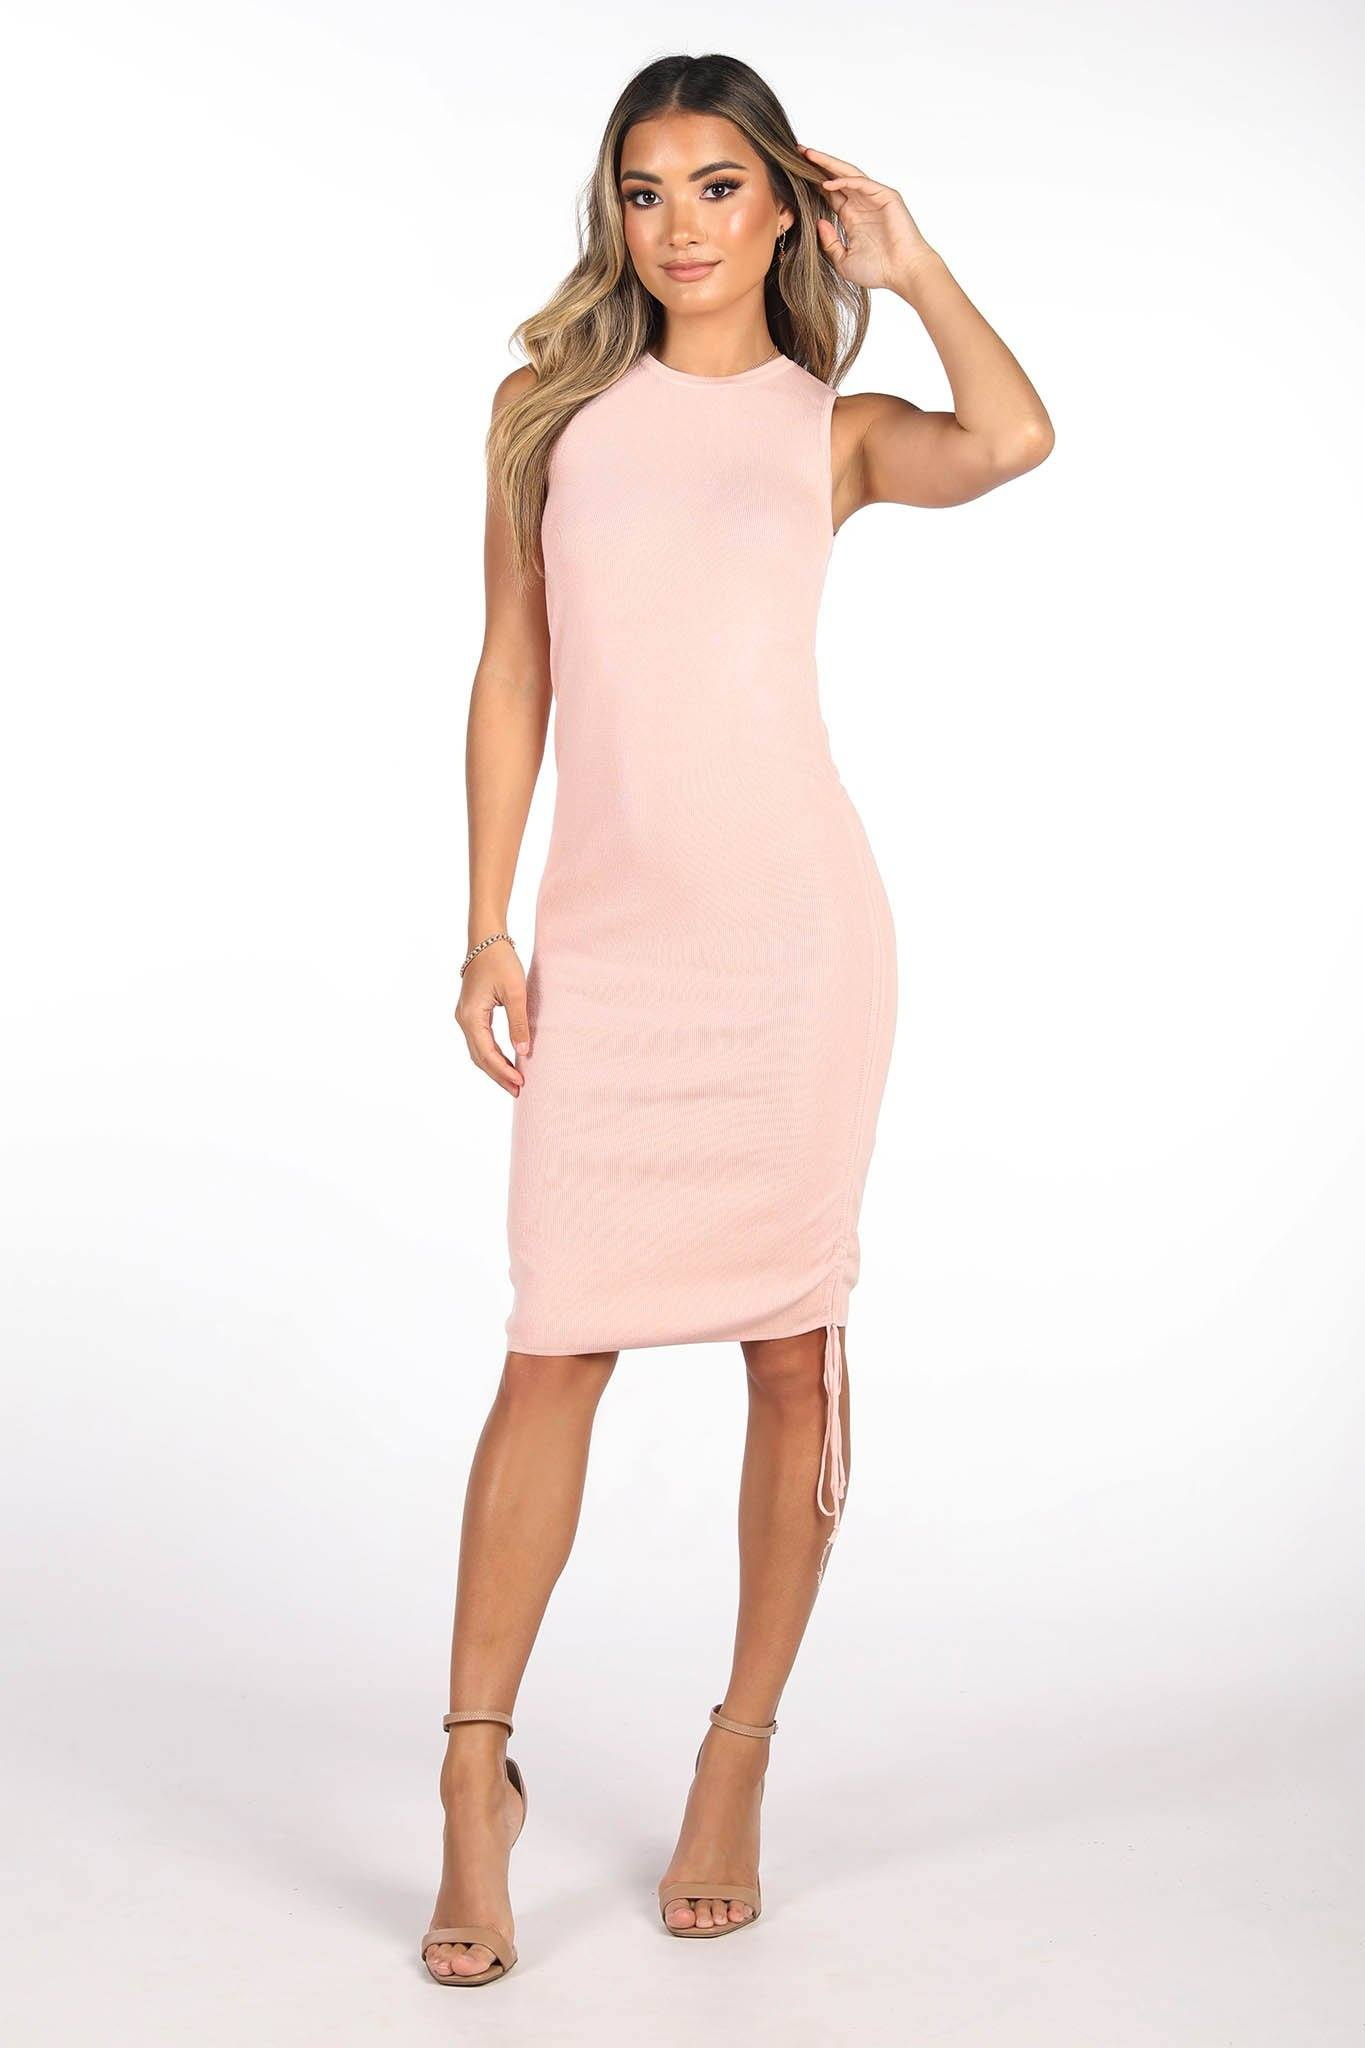 Light Pink Sleeveless Knit Dress with Crew Neckline and Ruching/Tie-up Drawstrings on the side that can be adjusted to mini or midi dress